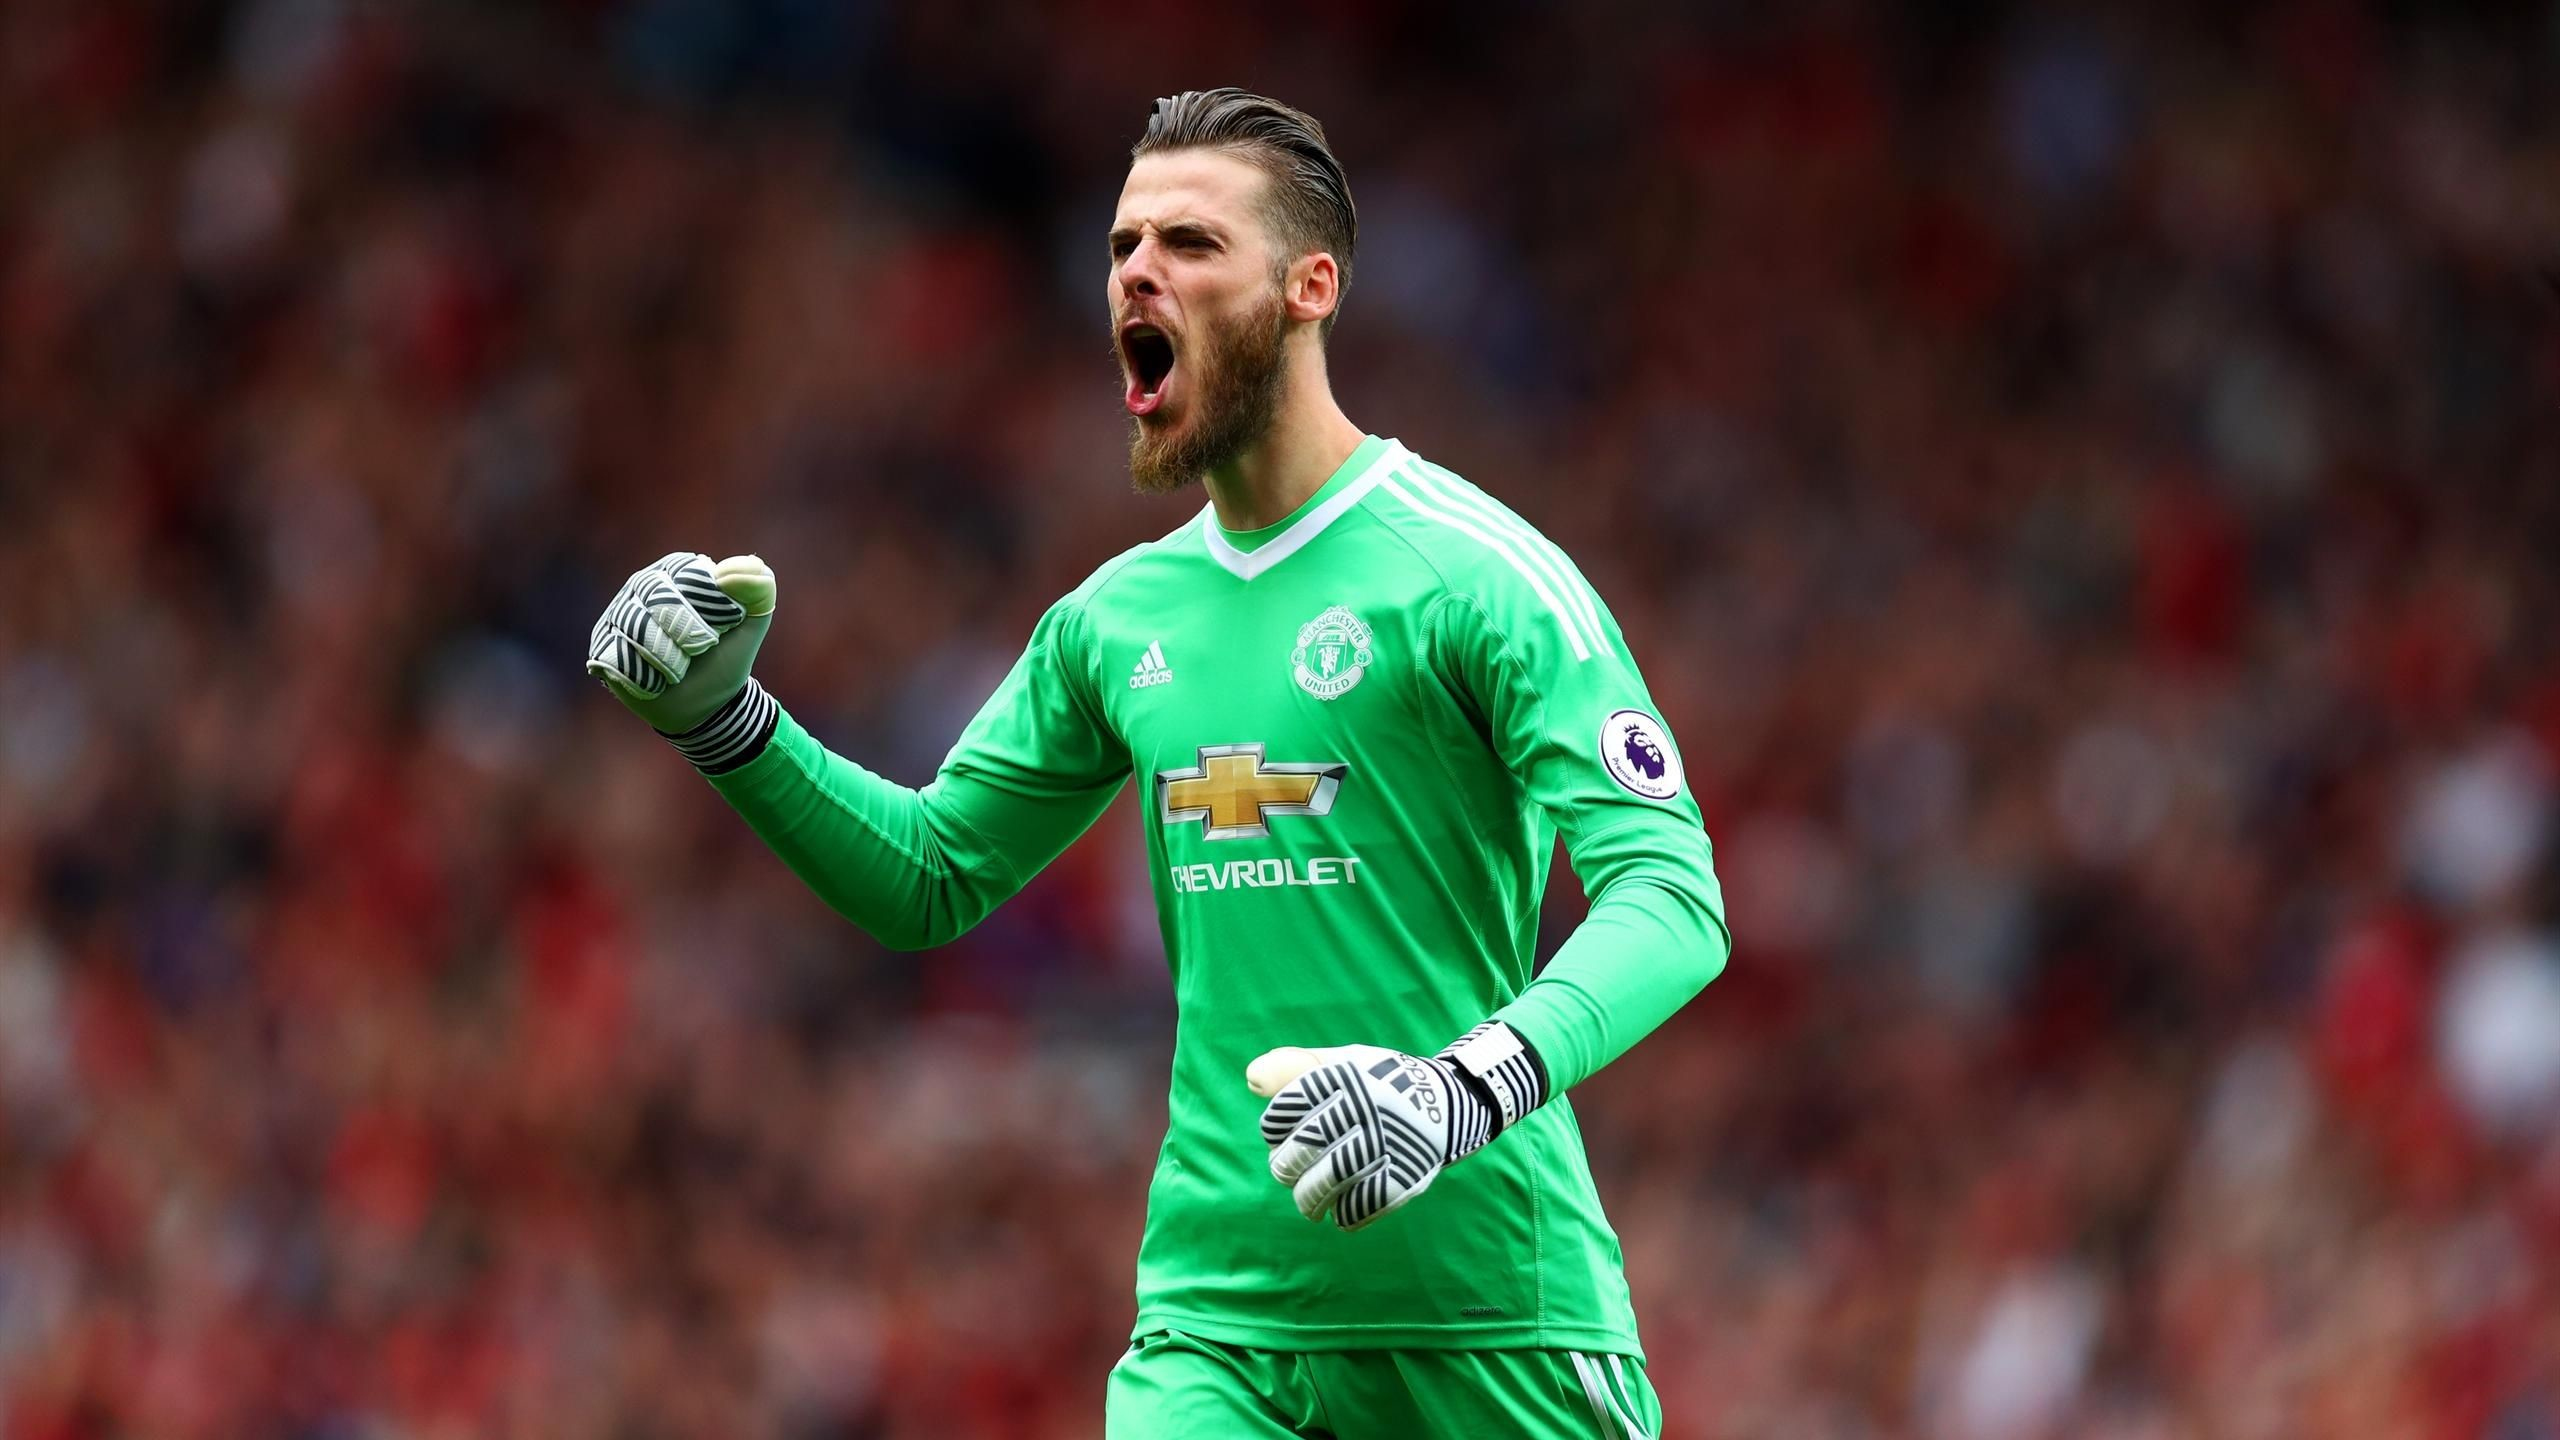 Manchester United Animated Wallpapers David De Gea Wallpapers Hd